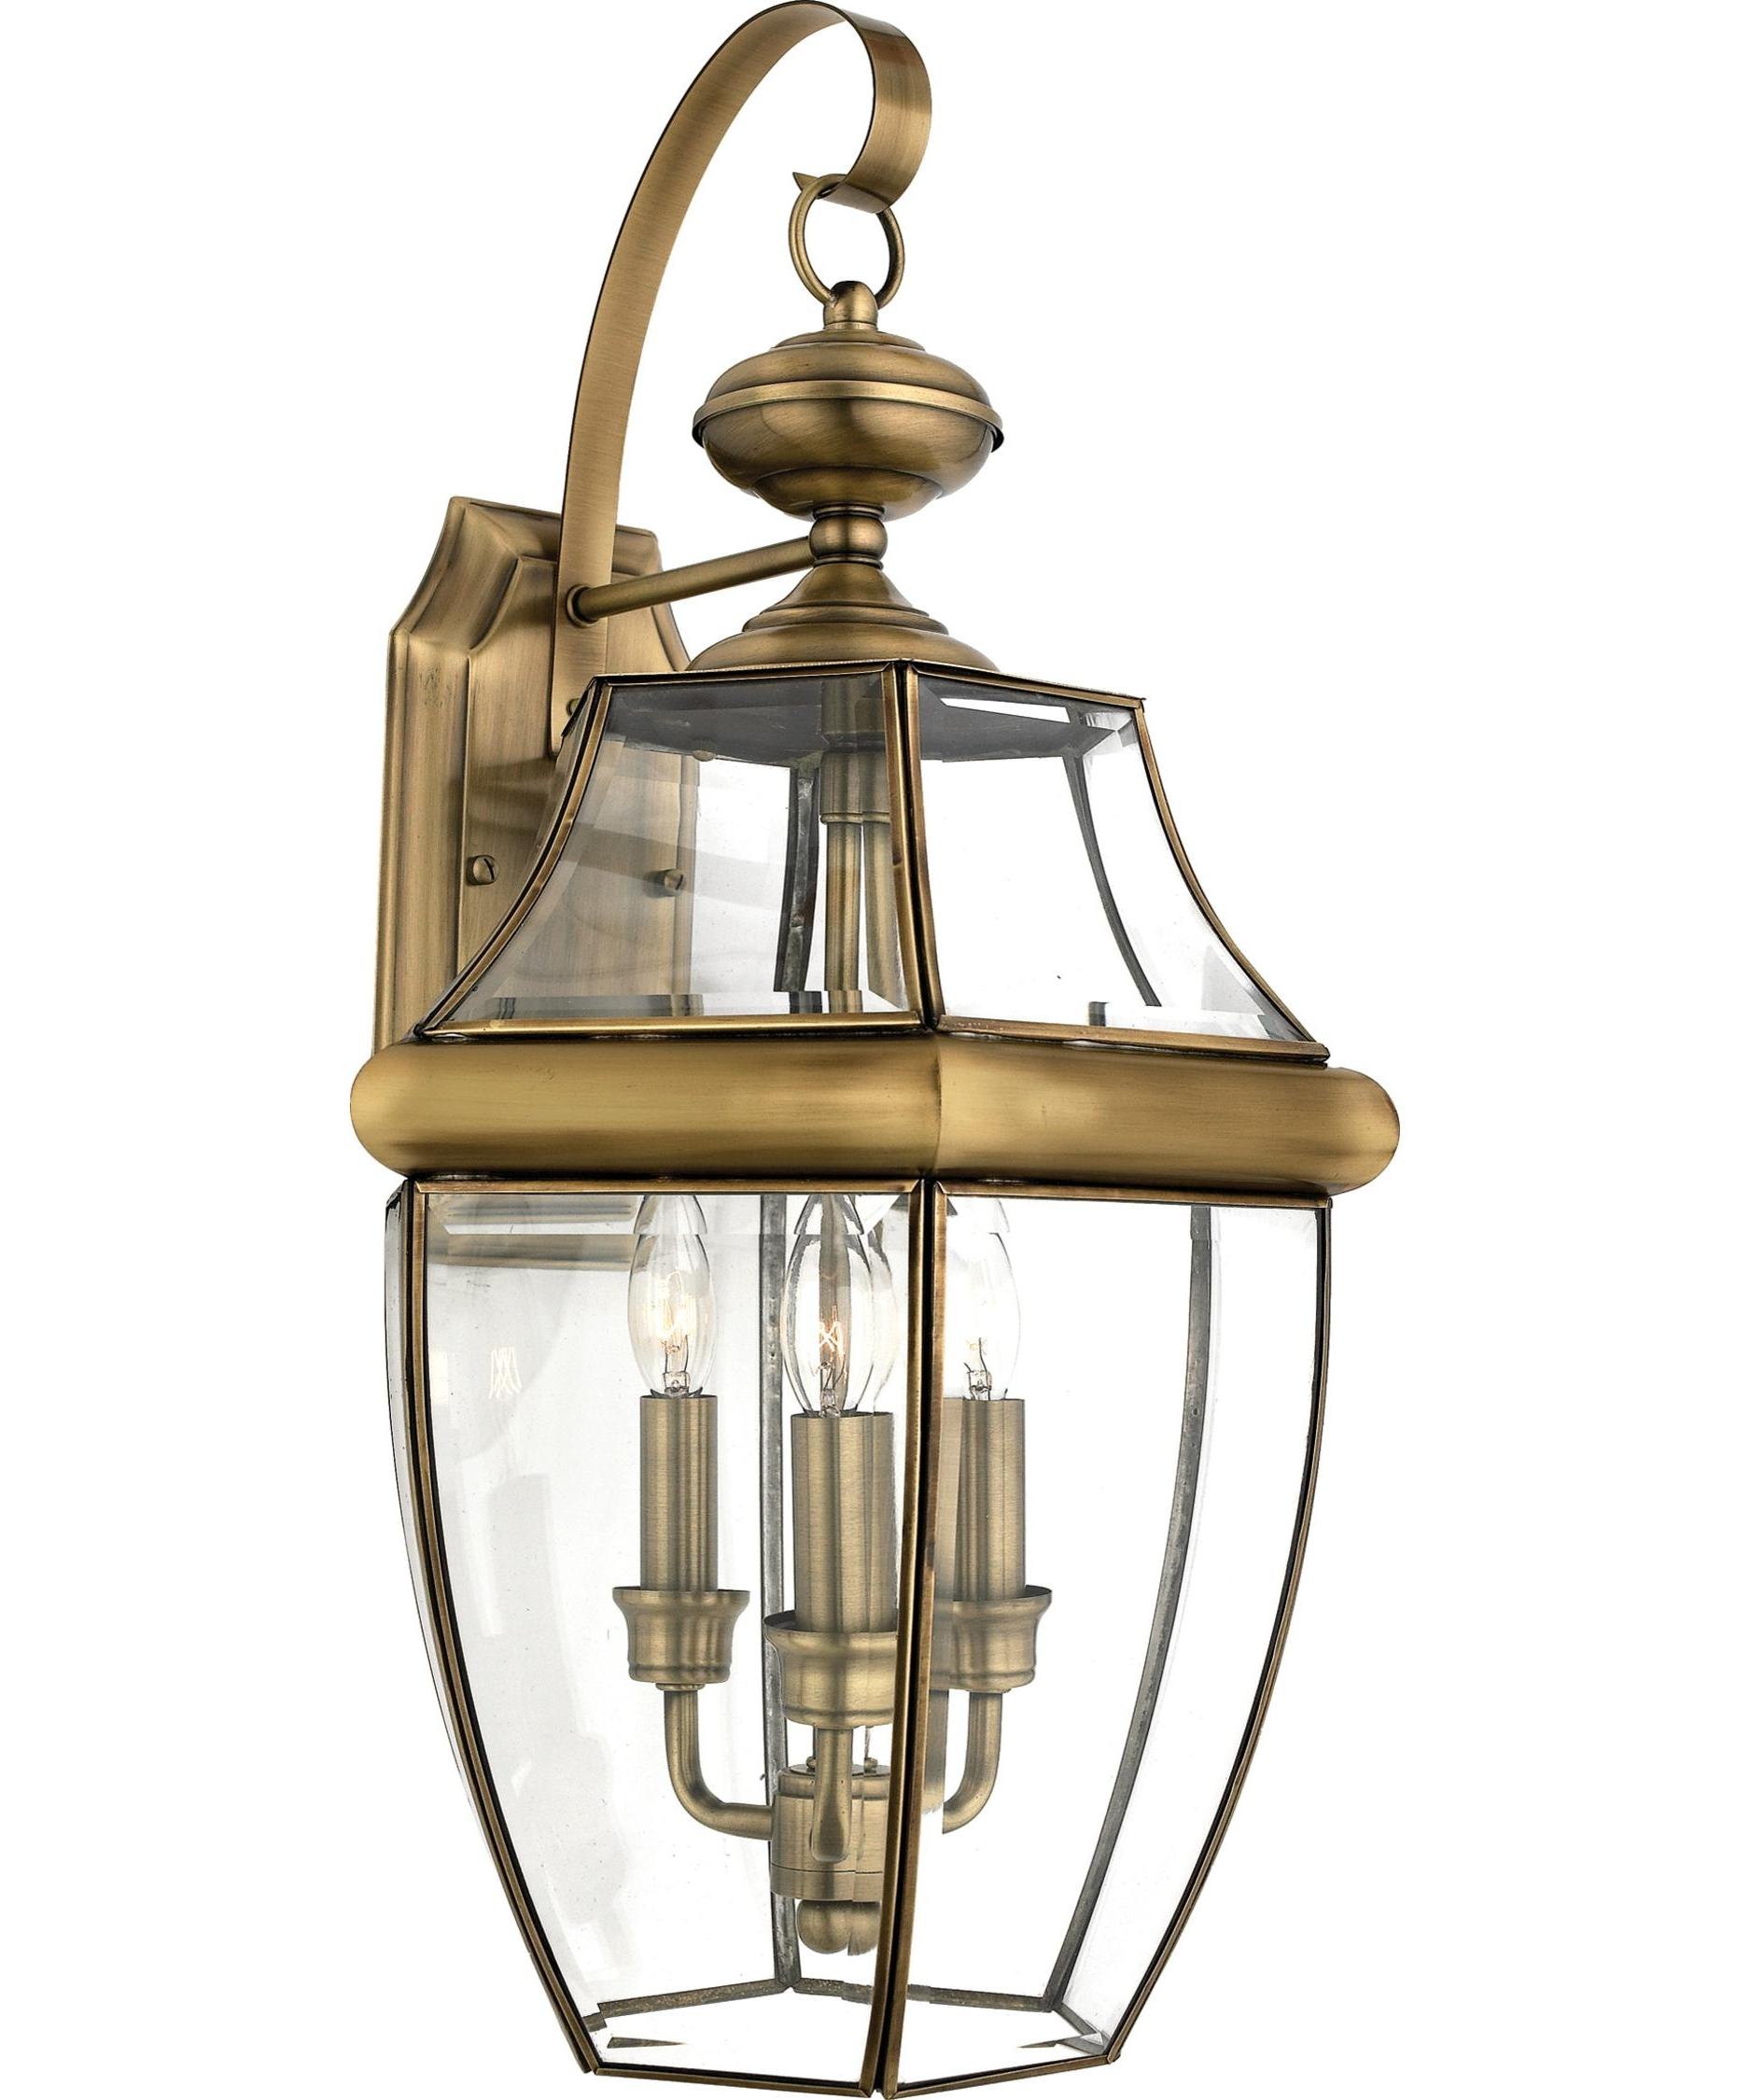 Quoizel Ny8318 Newbury 13 Inch Wide 3 Light Outdoor Wall Light For Famous Quoizel Outdoor Wall Lighting (View 9 of 20)